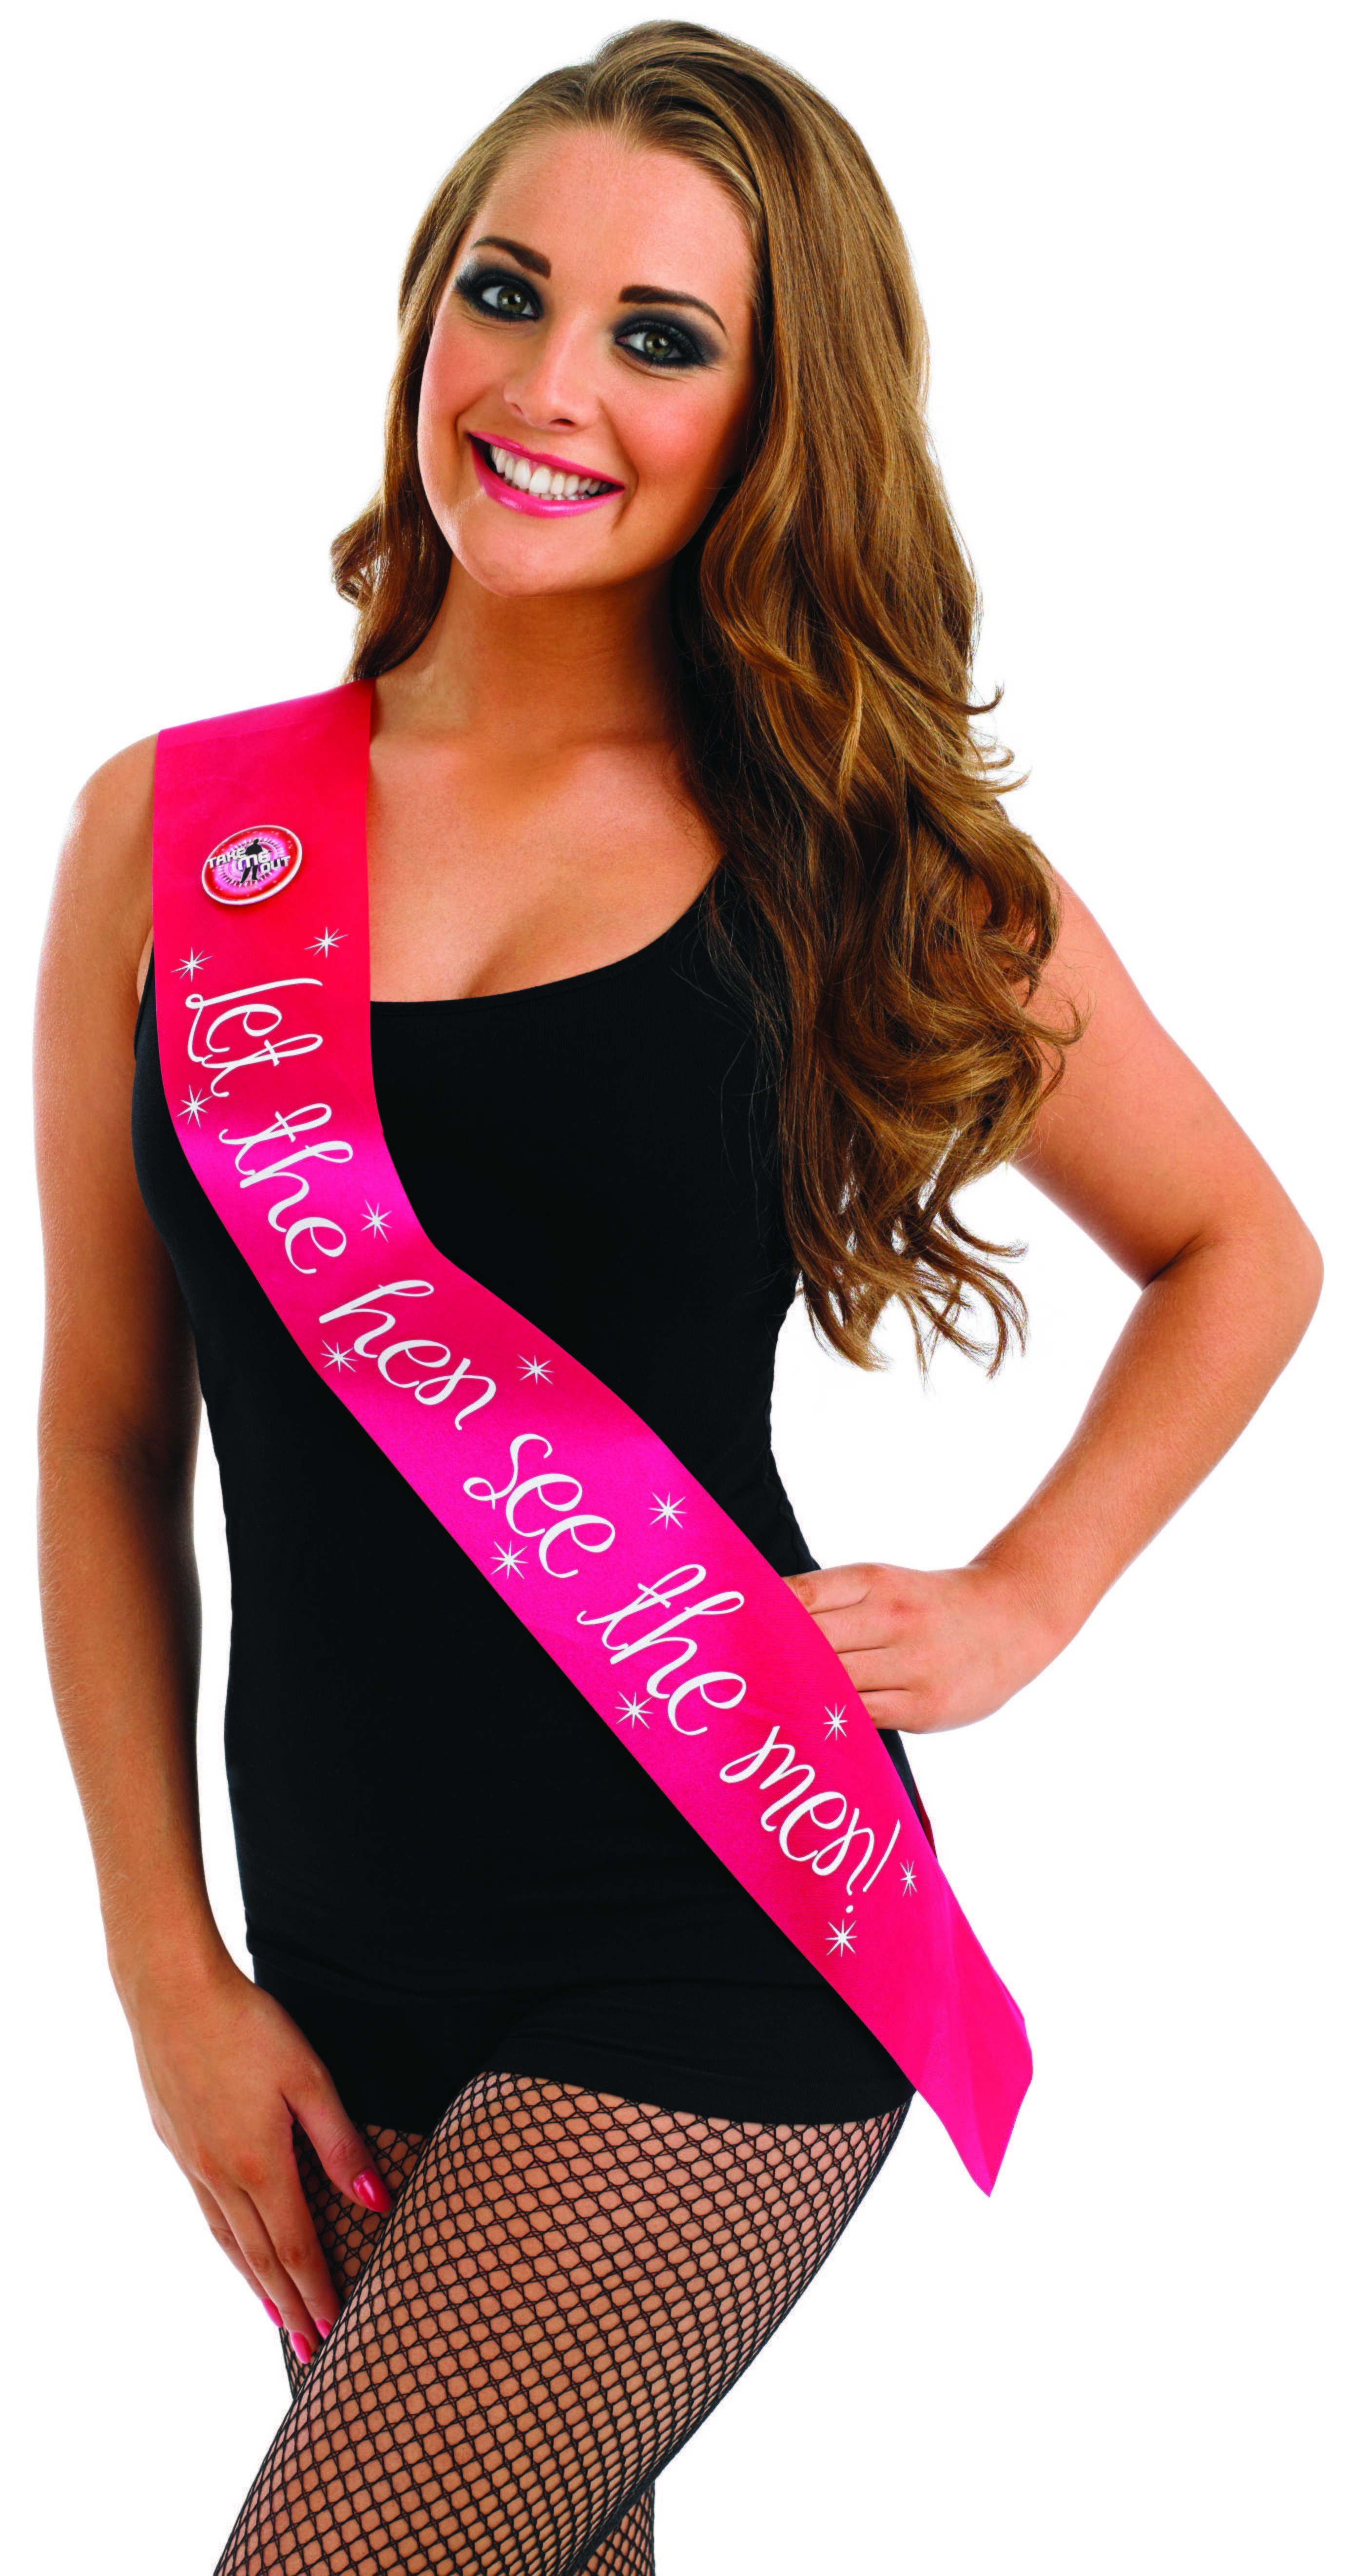 Take Me Out Hen Party Accessory Let The Hen See The Men Flashing Sash